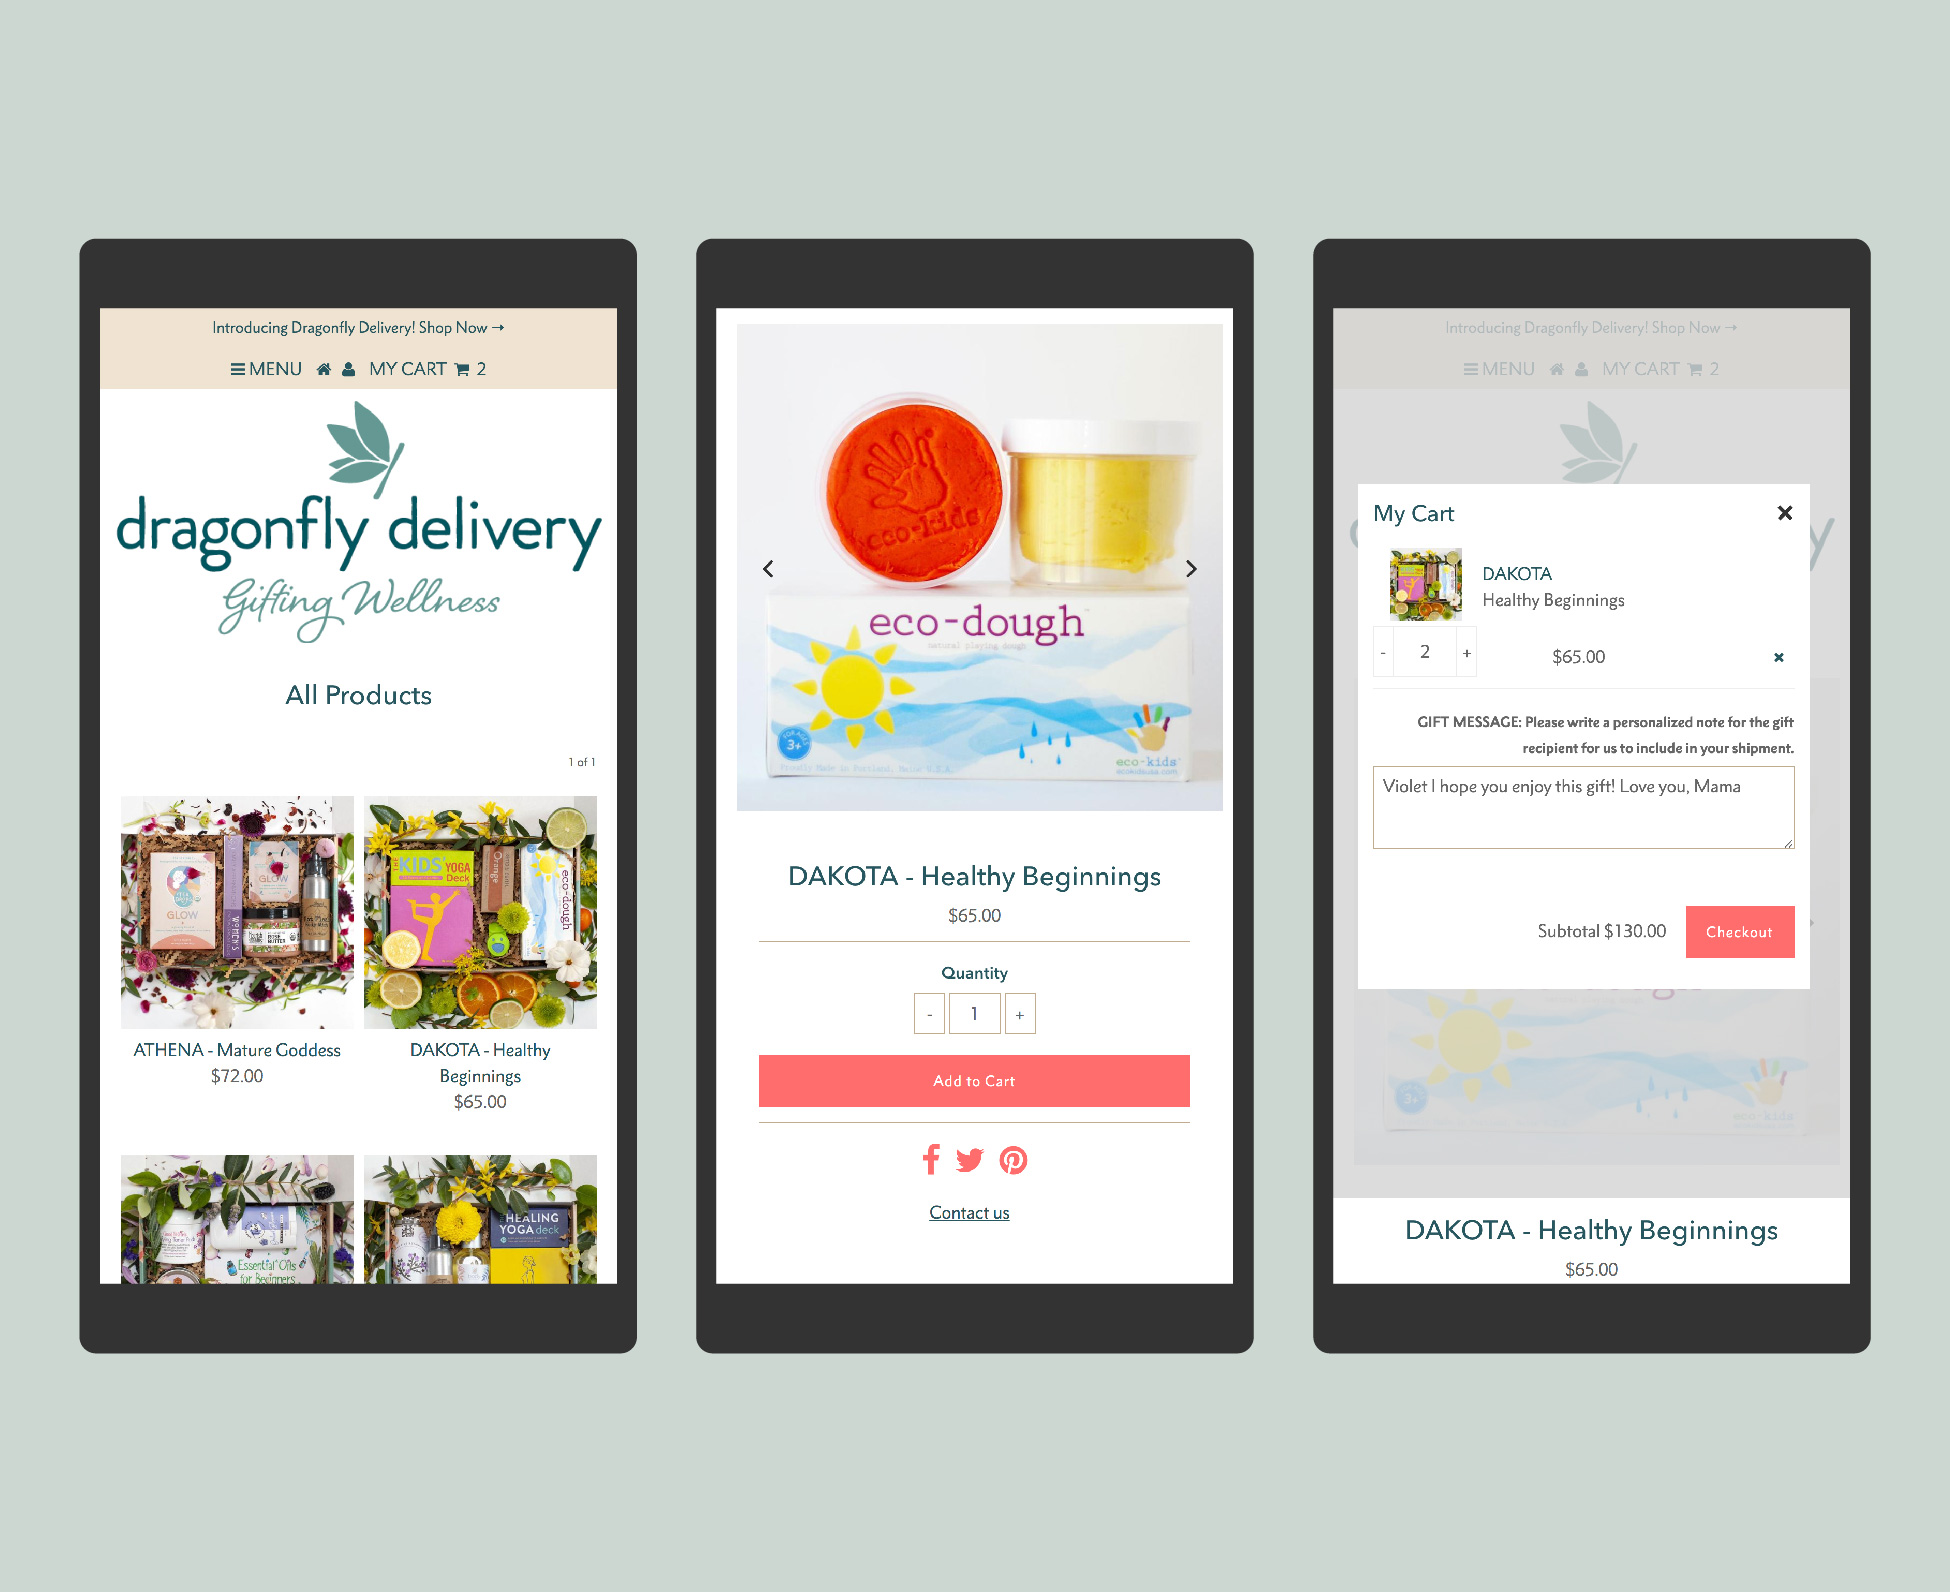 Dragonfly Delivery Online Shop with mobile friendly responsive design